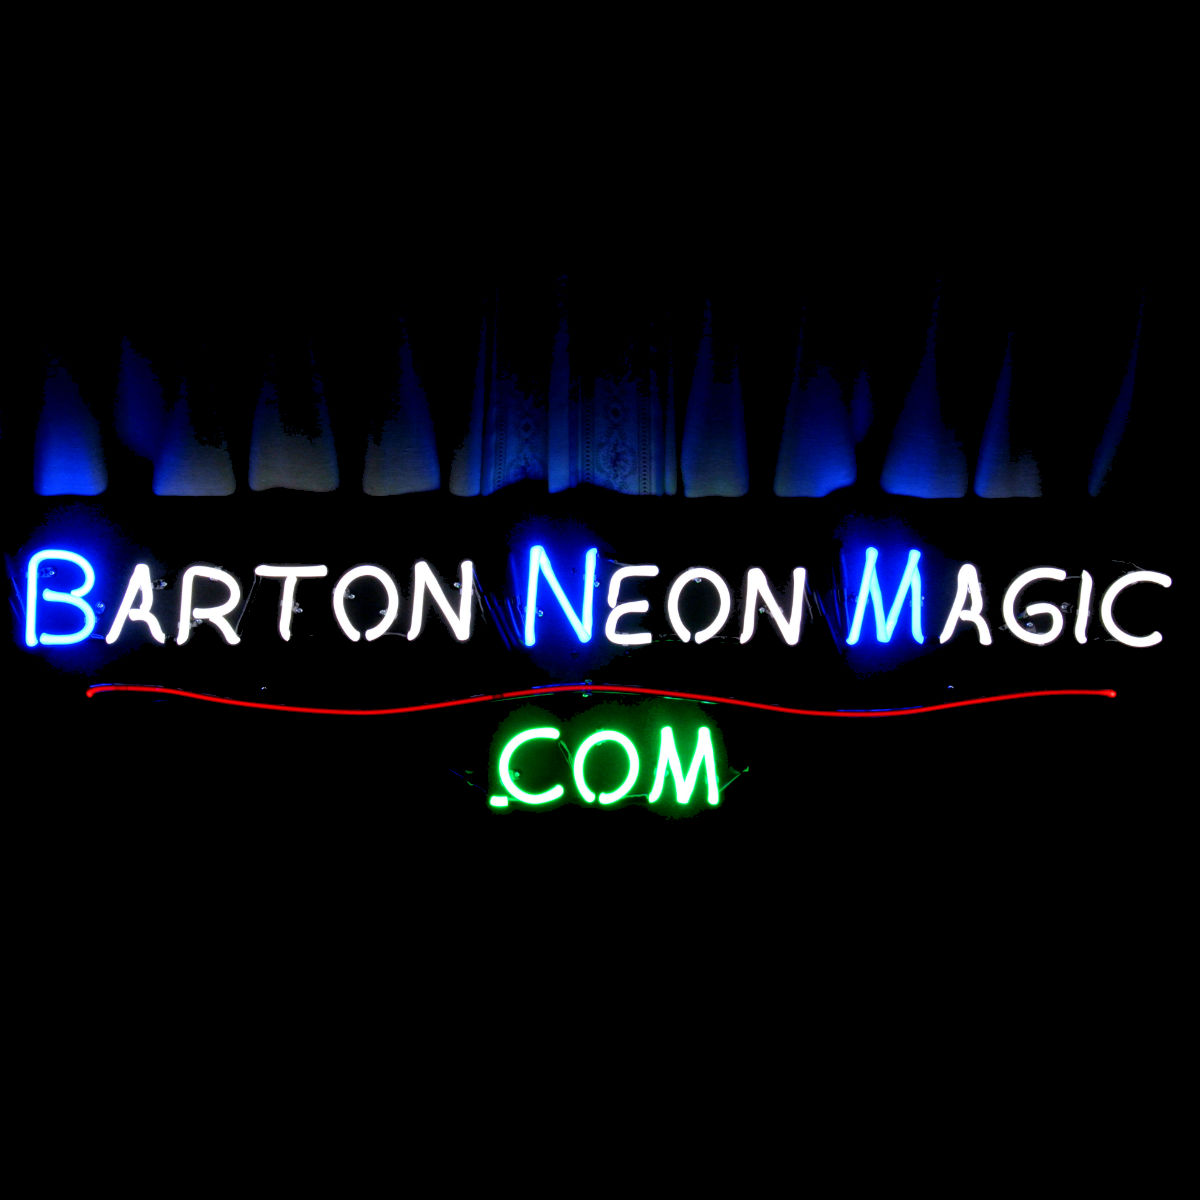 Custom Hand-blown Neon Lighting by John Barton - BartonNeonMagic.com